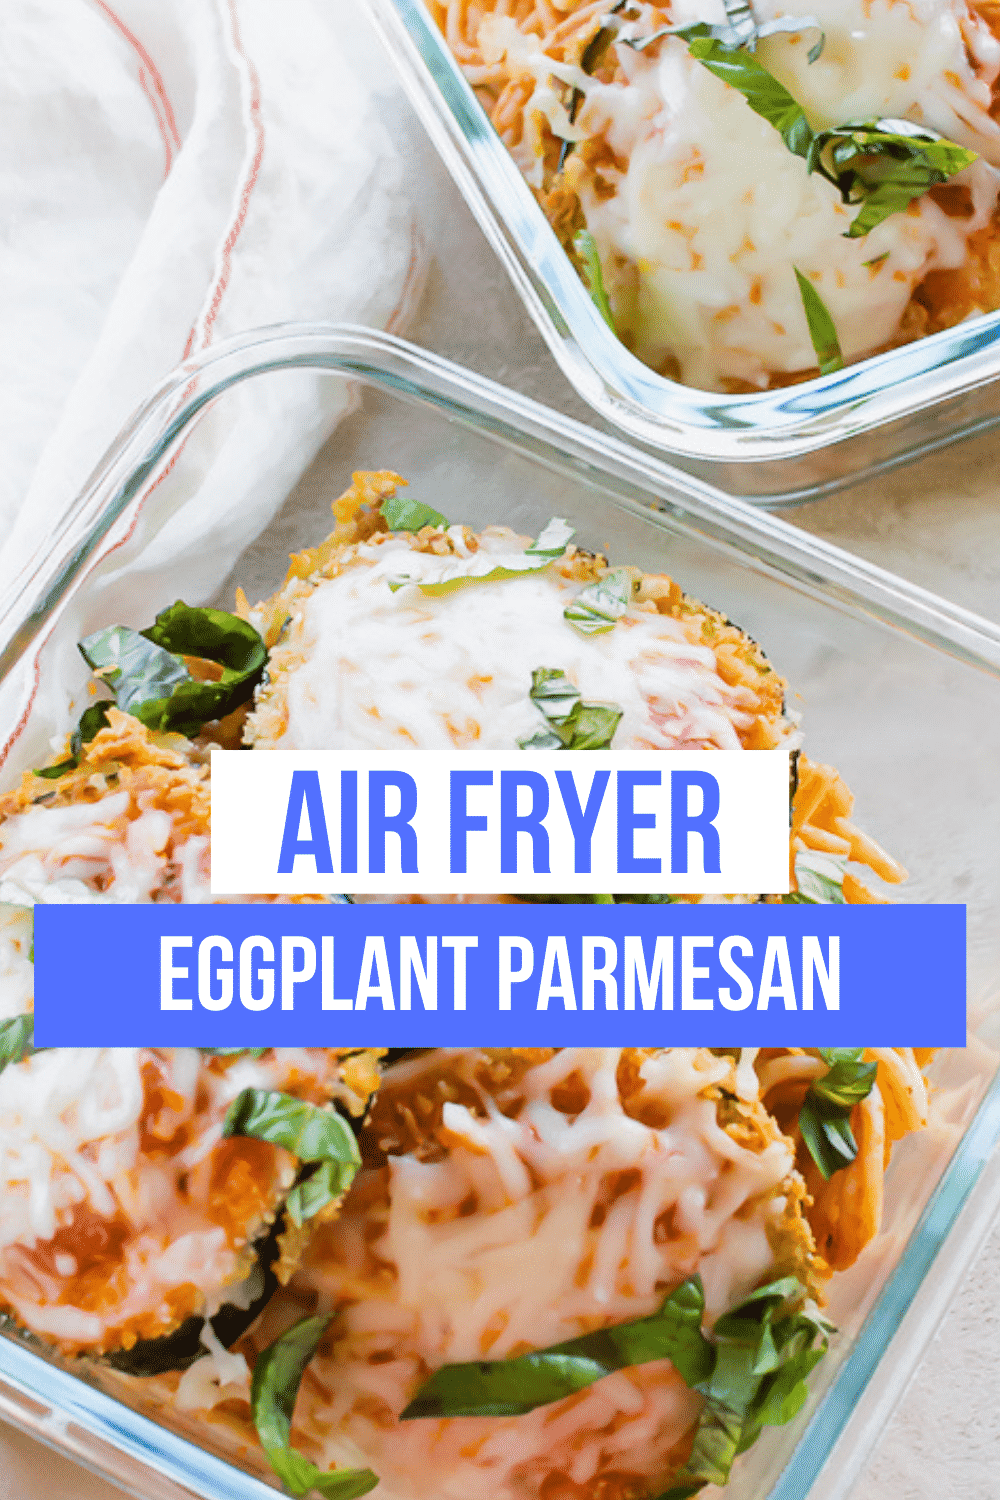 Airfryer eggplant parmesan is a classic vegetarian italian dinner that you can make with less oil and less mess by using your air fryer. Crispy on the outside and perfectly tender on the inside, you'll love this recipe. #Airfyer #eggplant via @vegetarianmamma